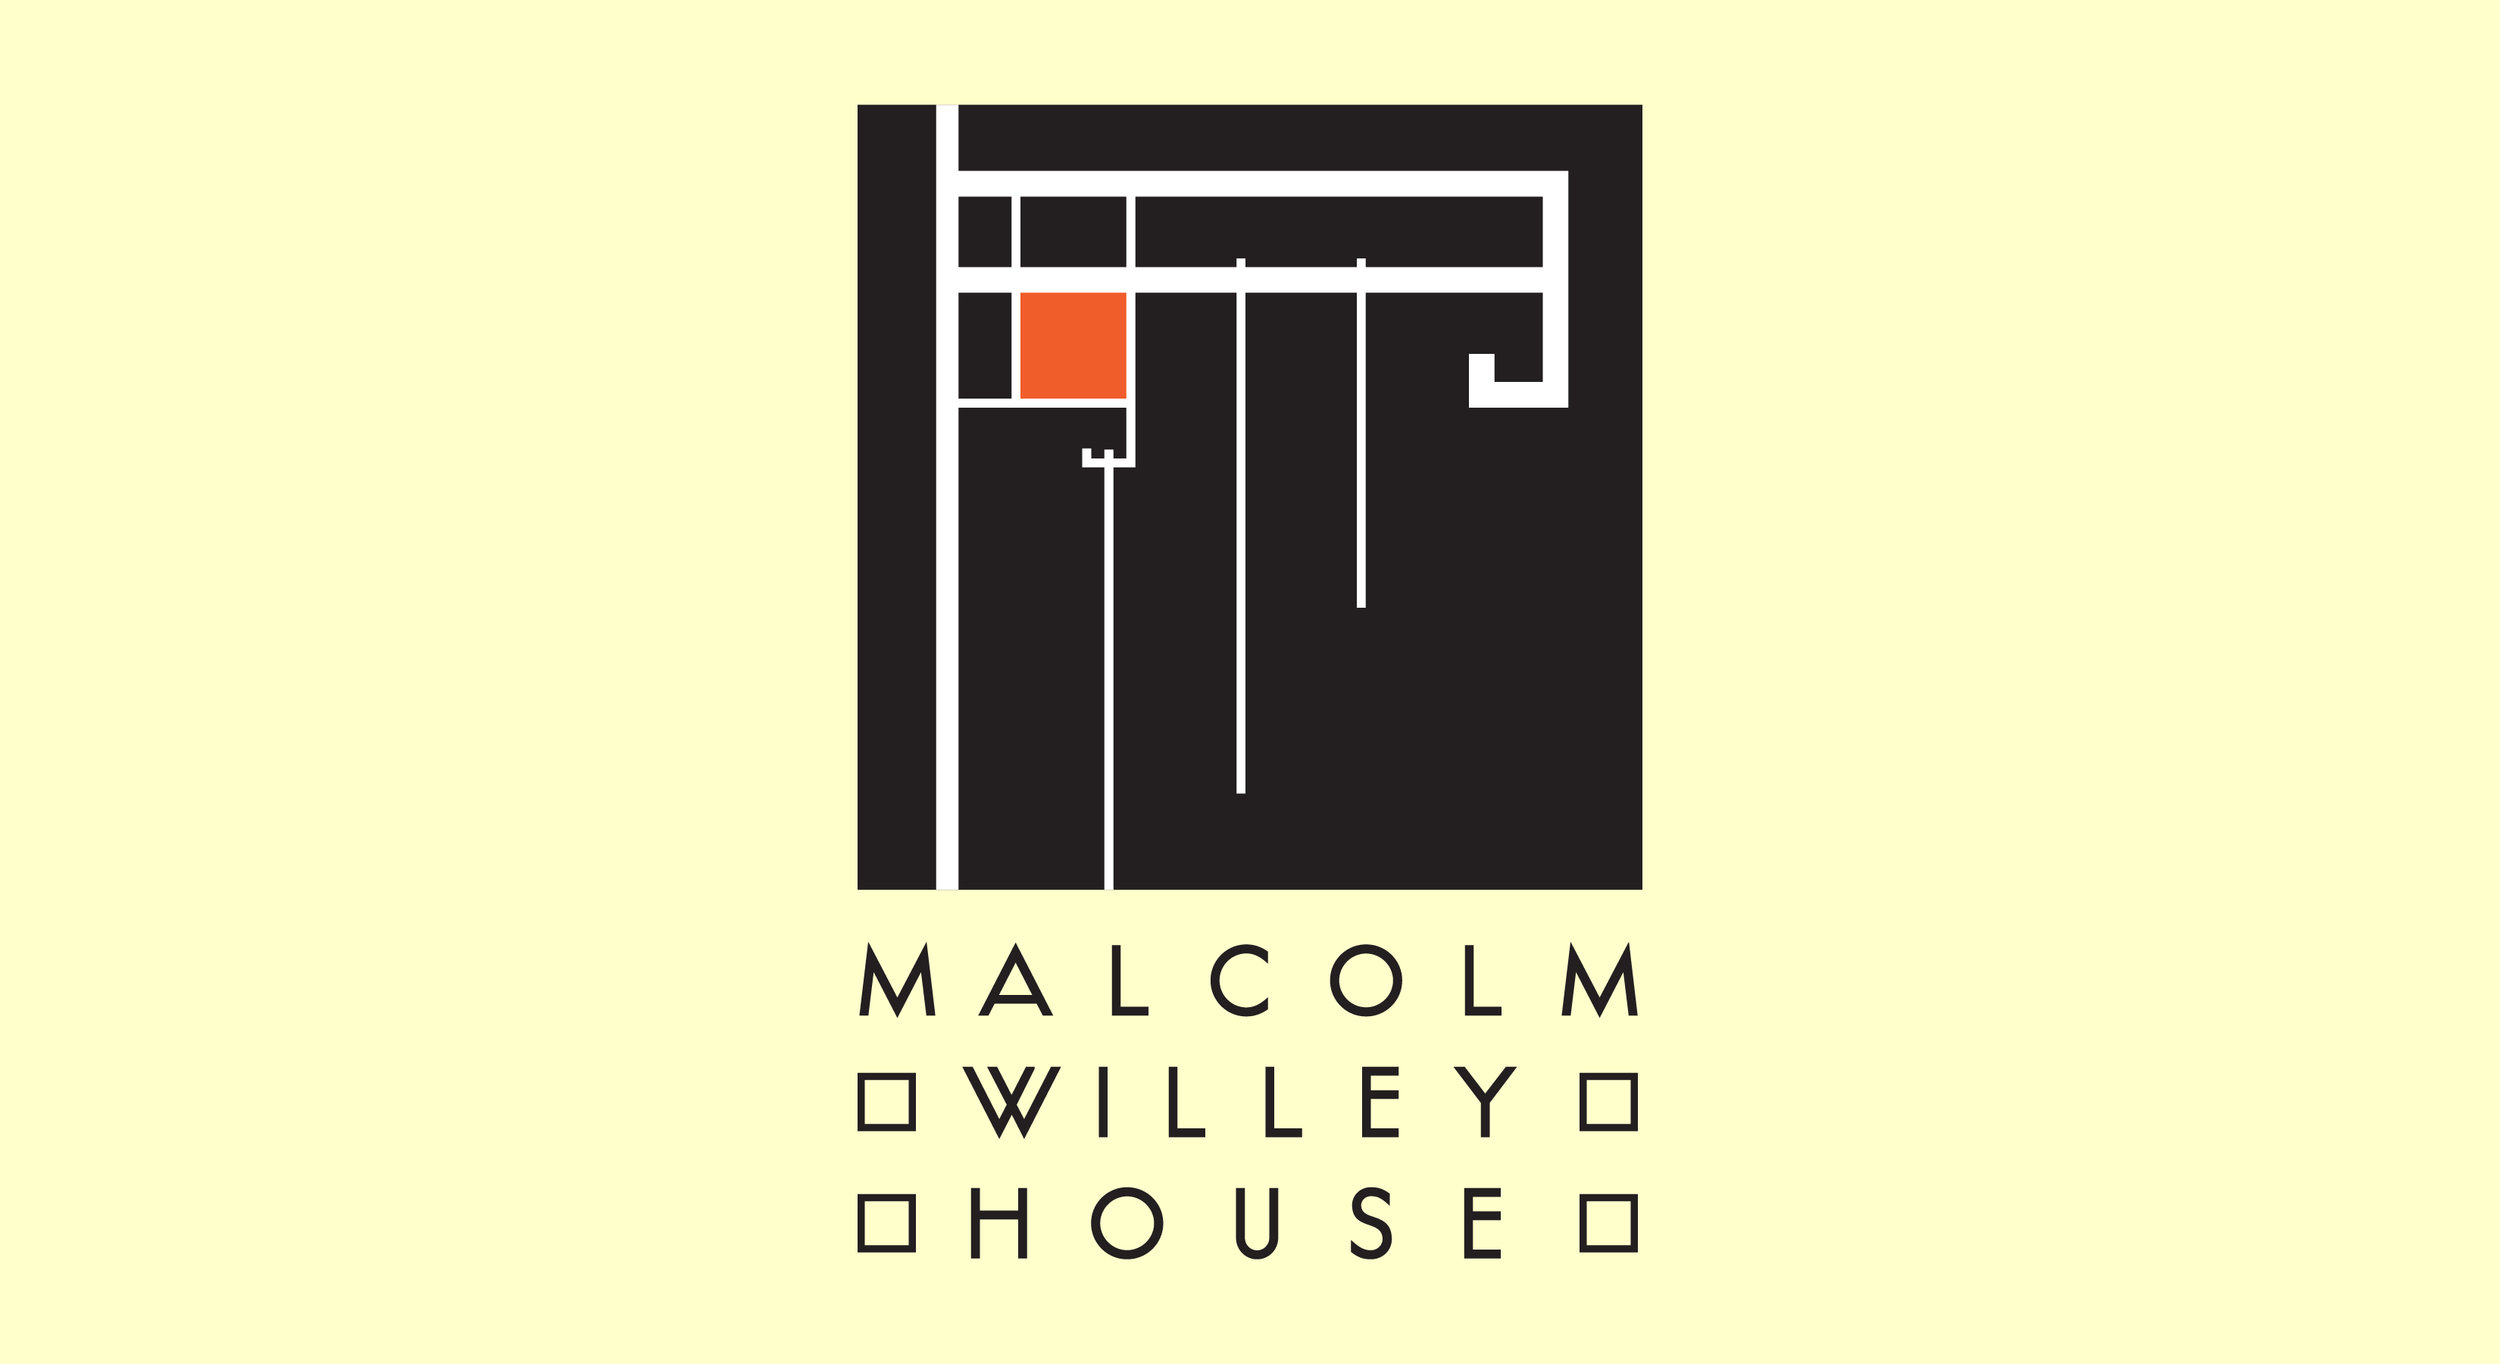 Identity for a house designed by Frank Lloyd Wright in the 1930s that resurrected his career and introduced many ideas now considered commonplace in modern domestic architecture.